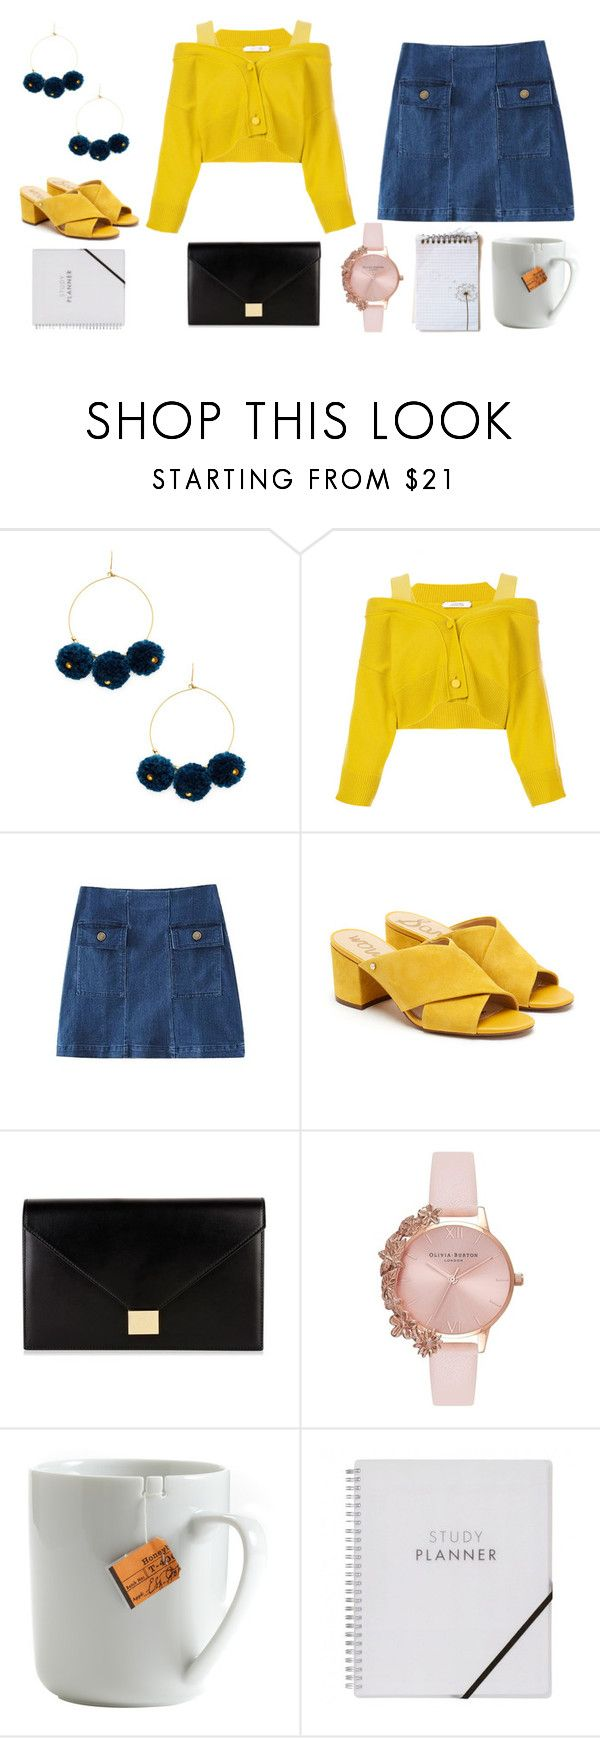 """""""People write songs about girls like you"""" by tipsymermaid ❤ liked on Polyvore featuring Chan Luu, Dorothee Schumacher, Sam Edelman, Victoria Beckham, Olivia Burton and le mouton noir & co."""